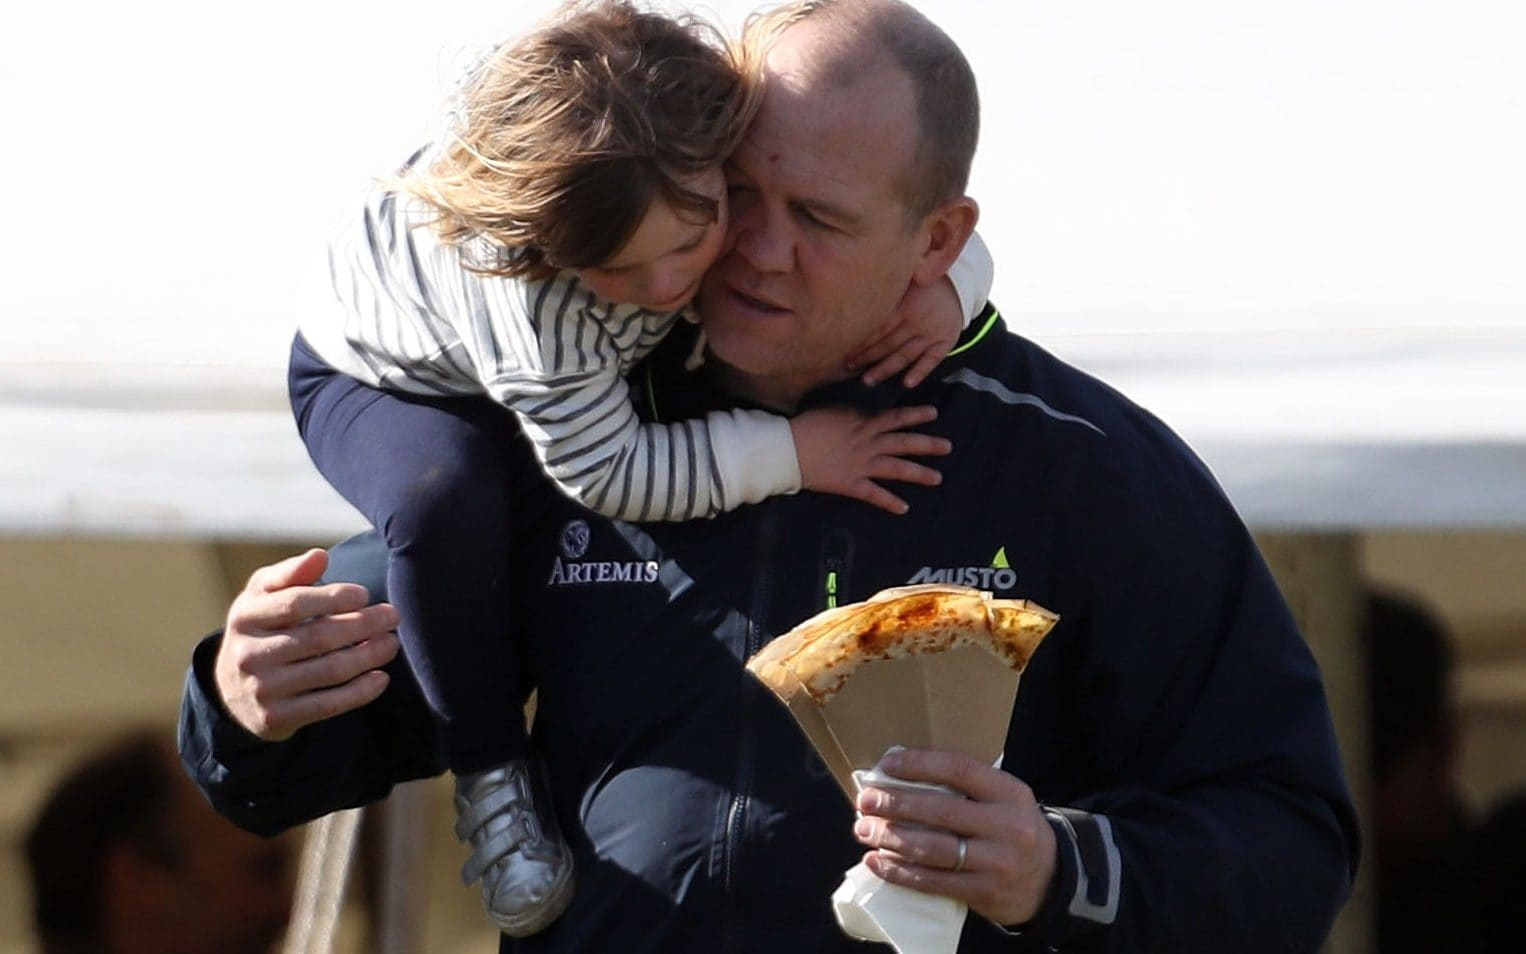 Mr Tindall pictured with his daughter Mia at the Land Rover Gatcombe Horse trials in Gloucestershire last year